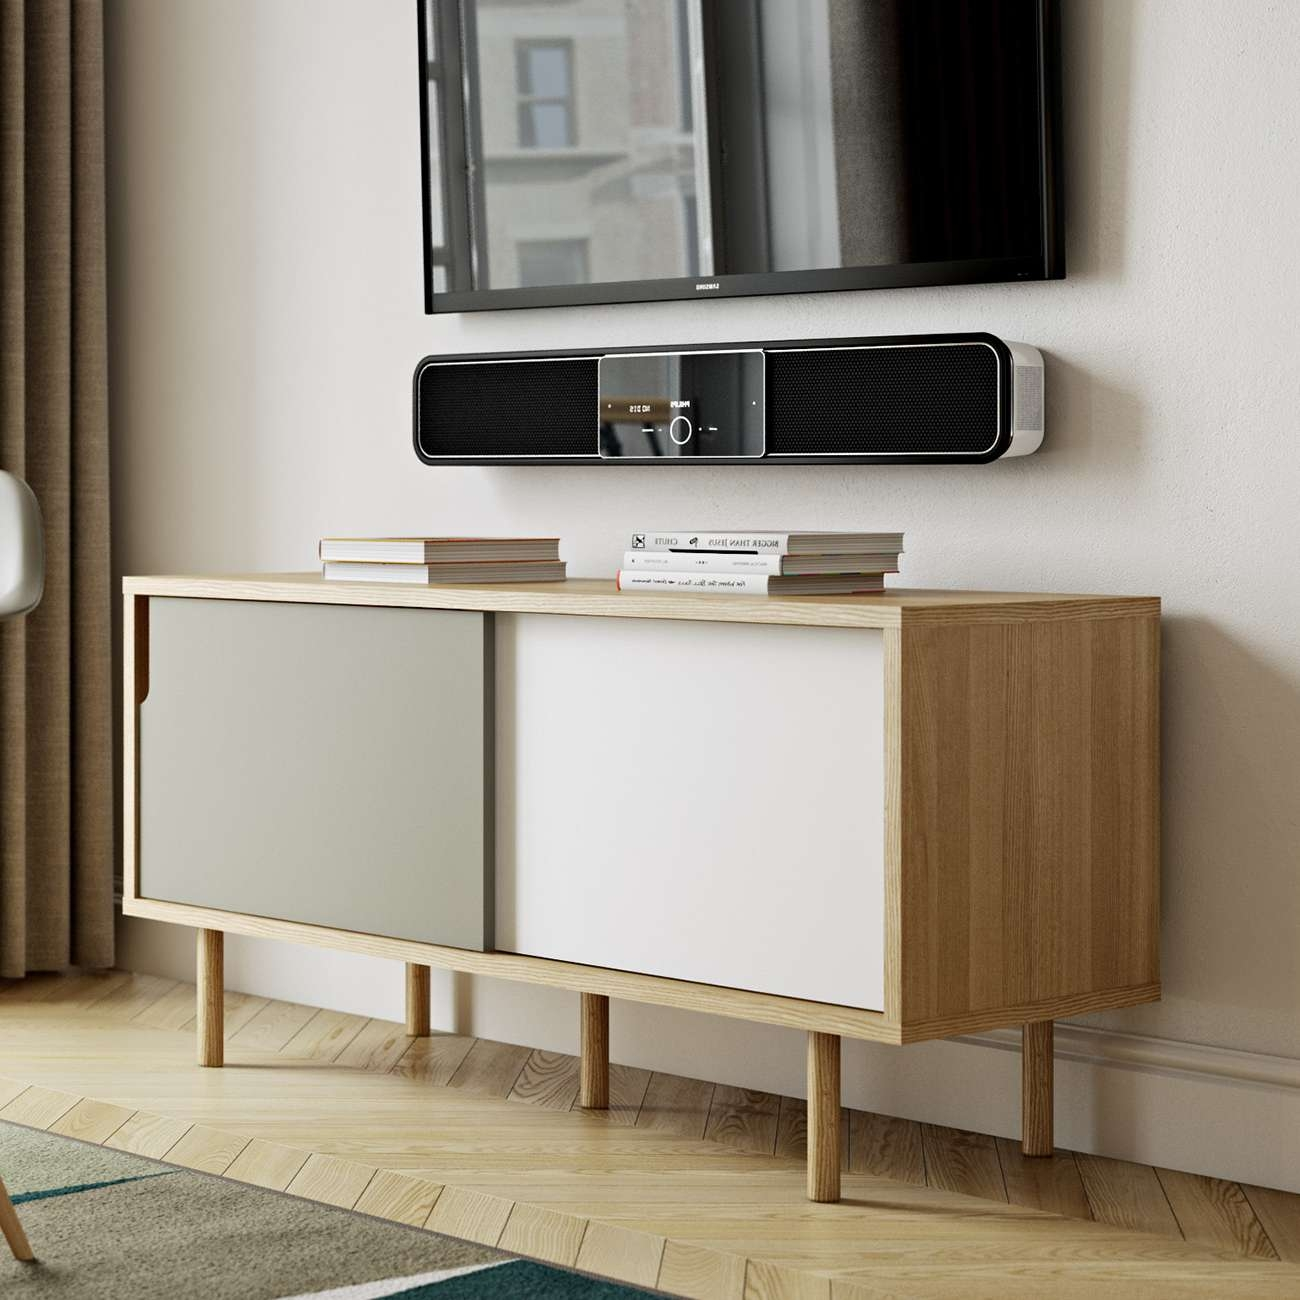 Dann Tv Stand | Oak / Pure White / Grey, Tema Home – Modern Manhattan With White And Wood Tv Stands (View 3 of 15)